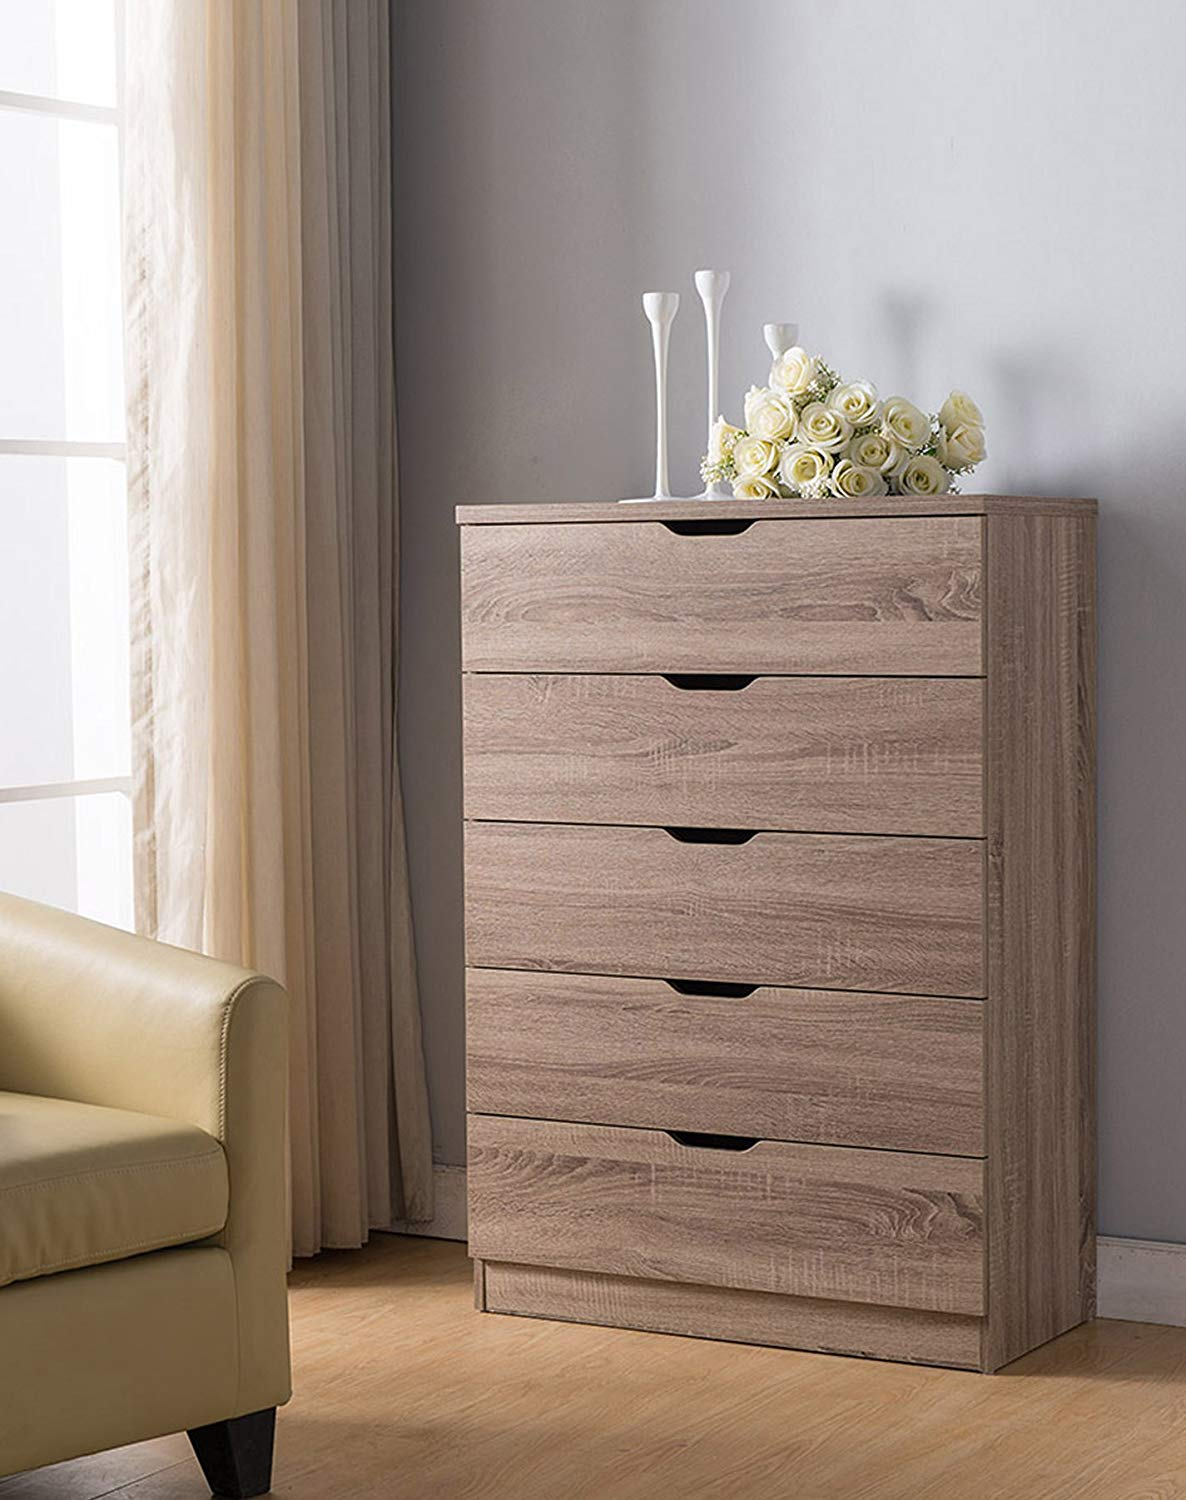 Eltra K Series Smart Home 5 Drawers Bedroom Chest Review